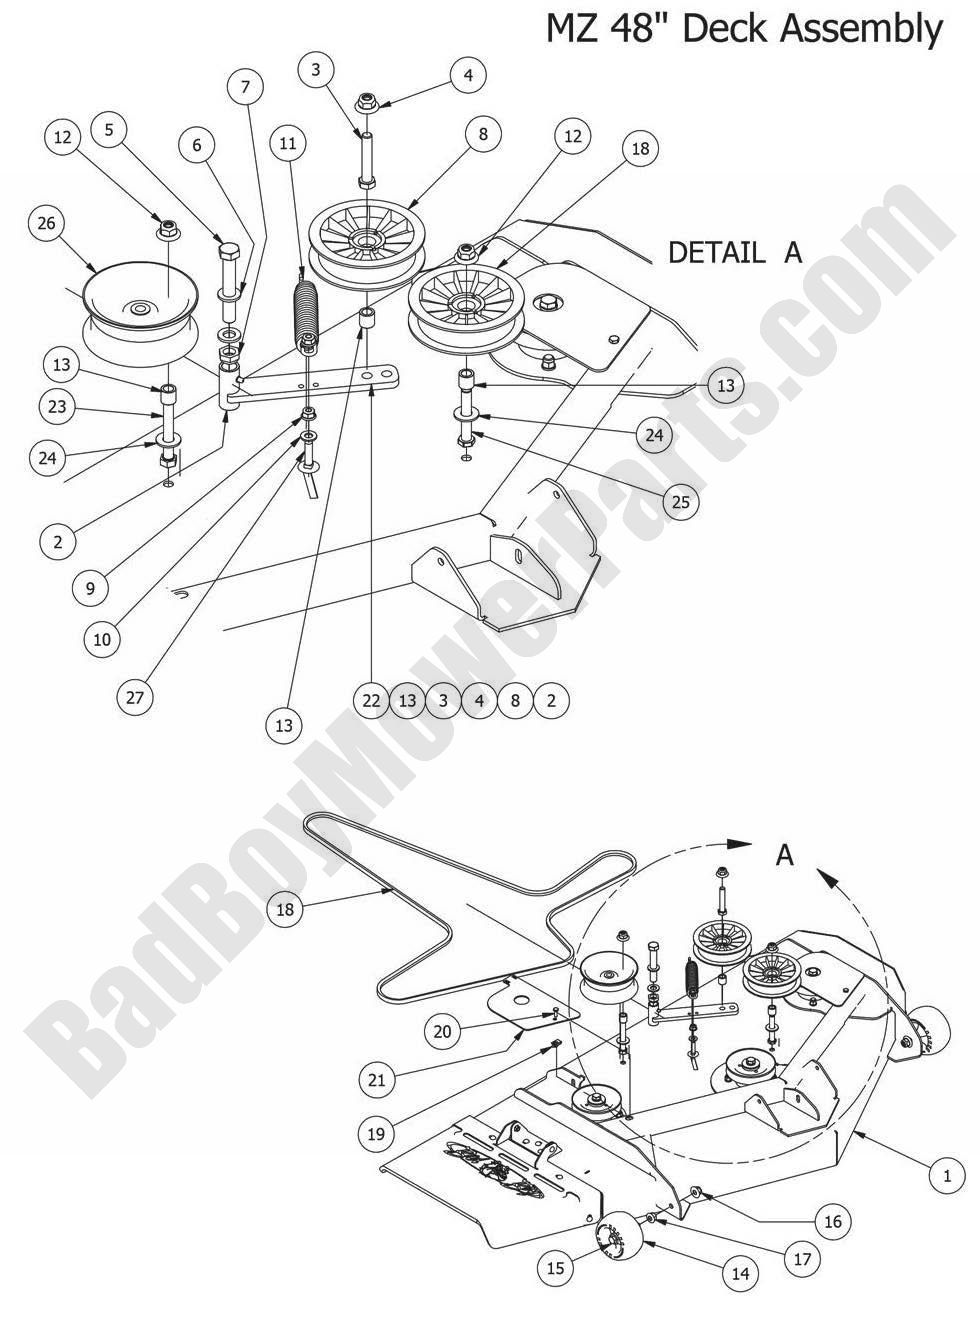 Bad Boy Parts Lookup 2014 Mz Magnum 48in Deck Assembly